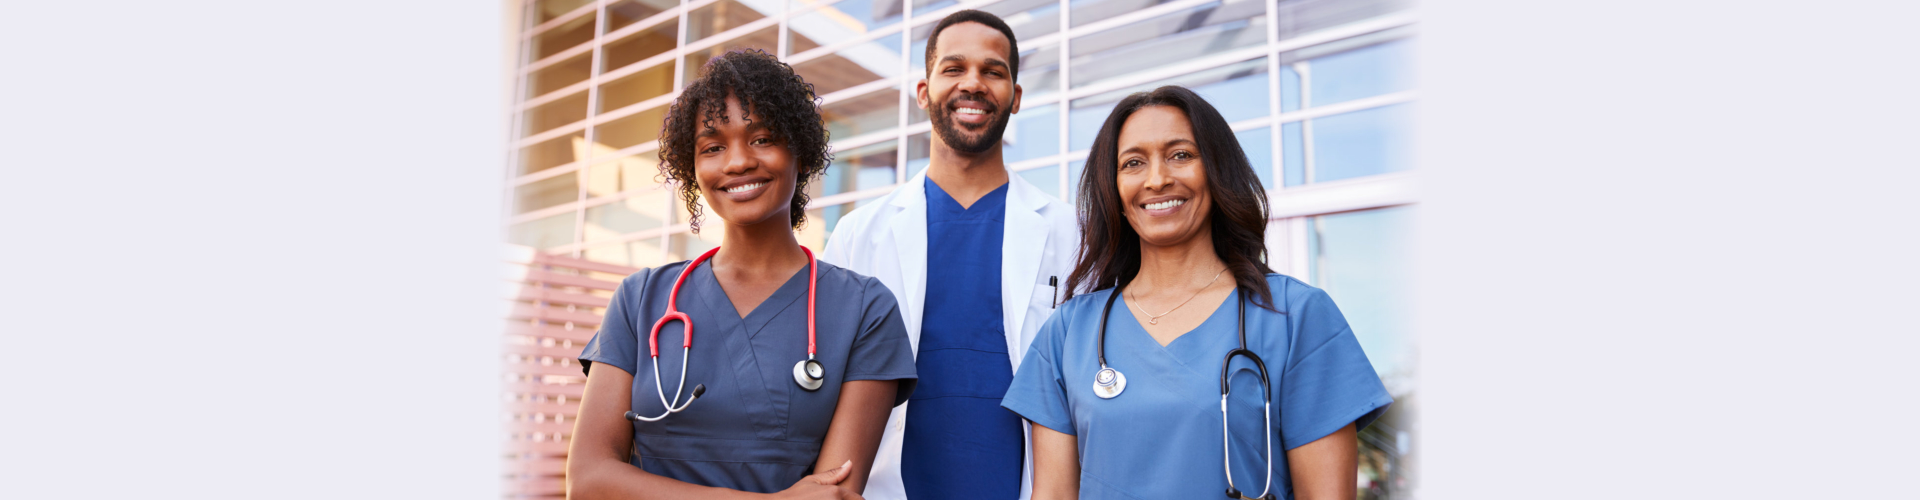 Three healthcare colleagues standing outside modern hospital